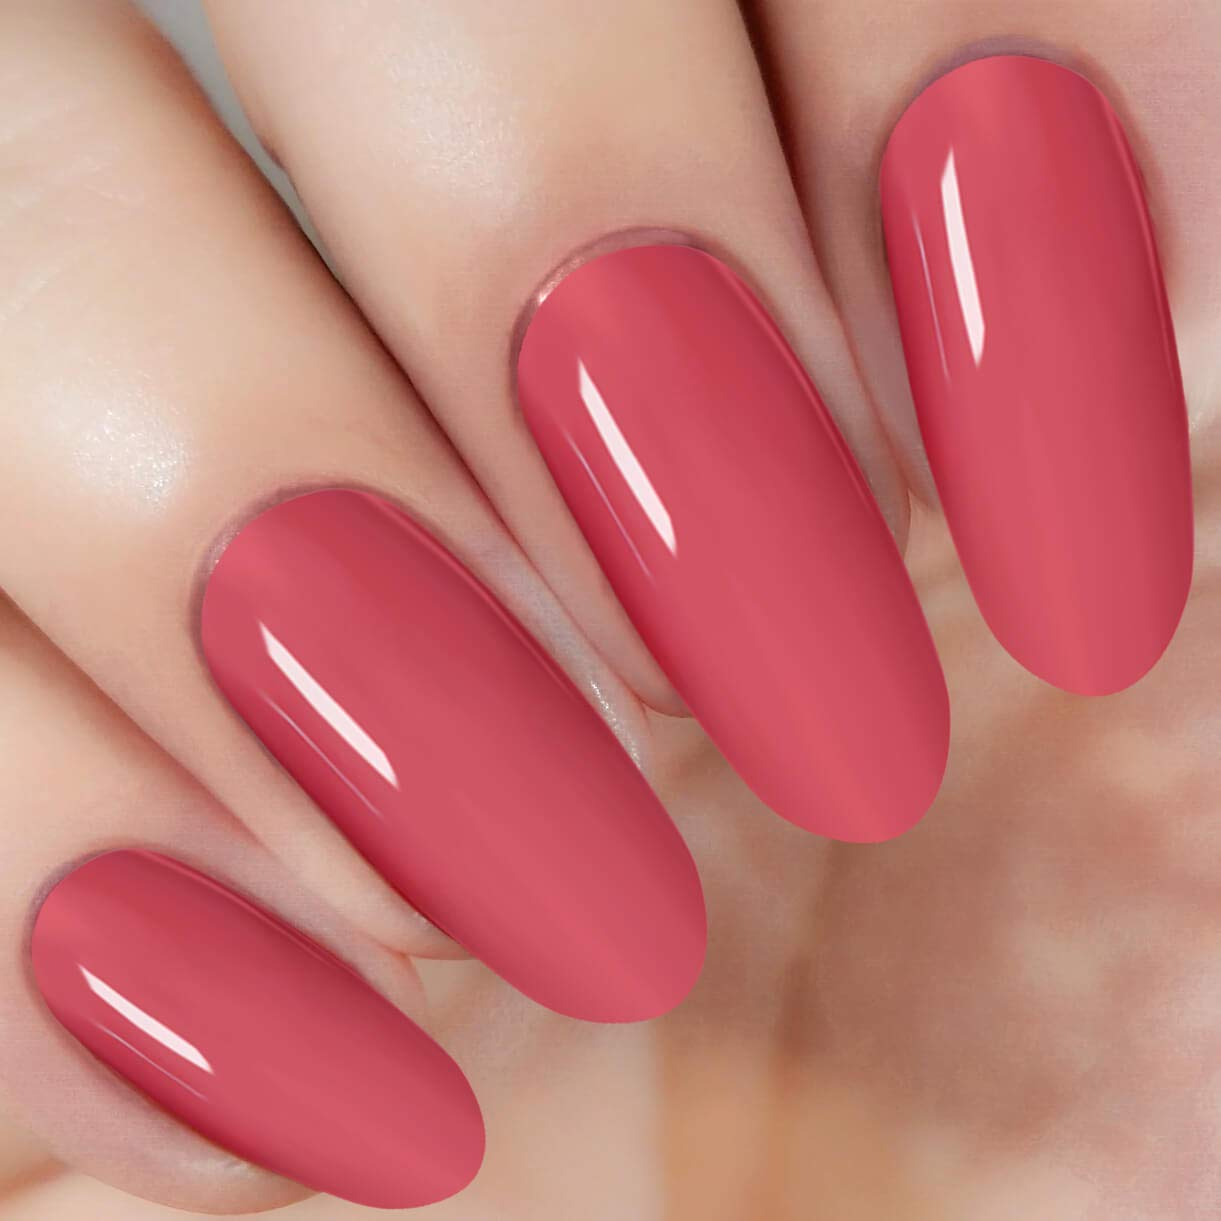 Neon Red Nail Dipping Powder (added vitamin) I.B.N Acrylic Dip Powder Colors, 1 Ounce/28g, No Need Nail Dryer Lamp Cured (DIP 023)